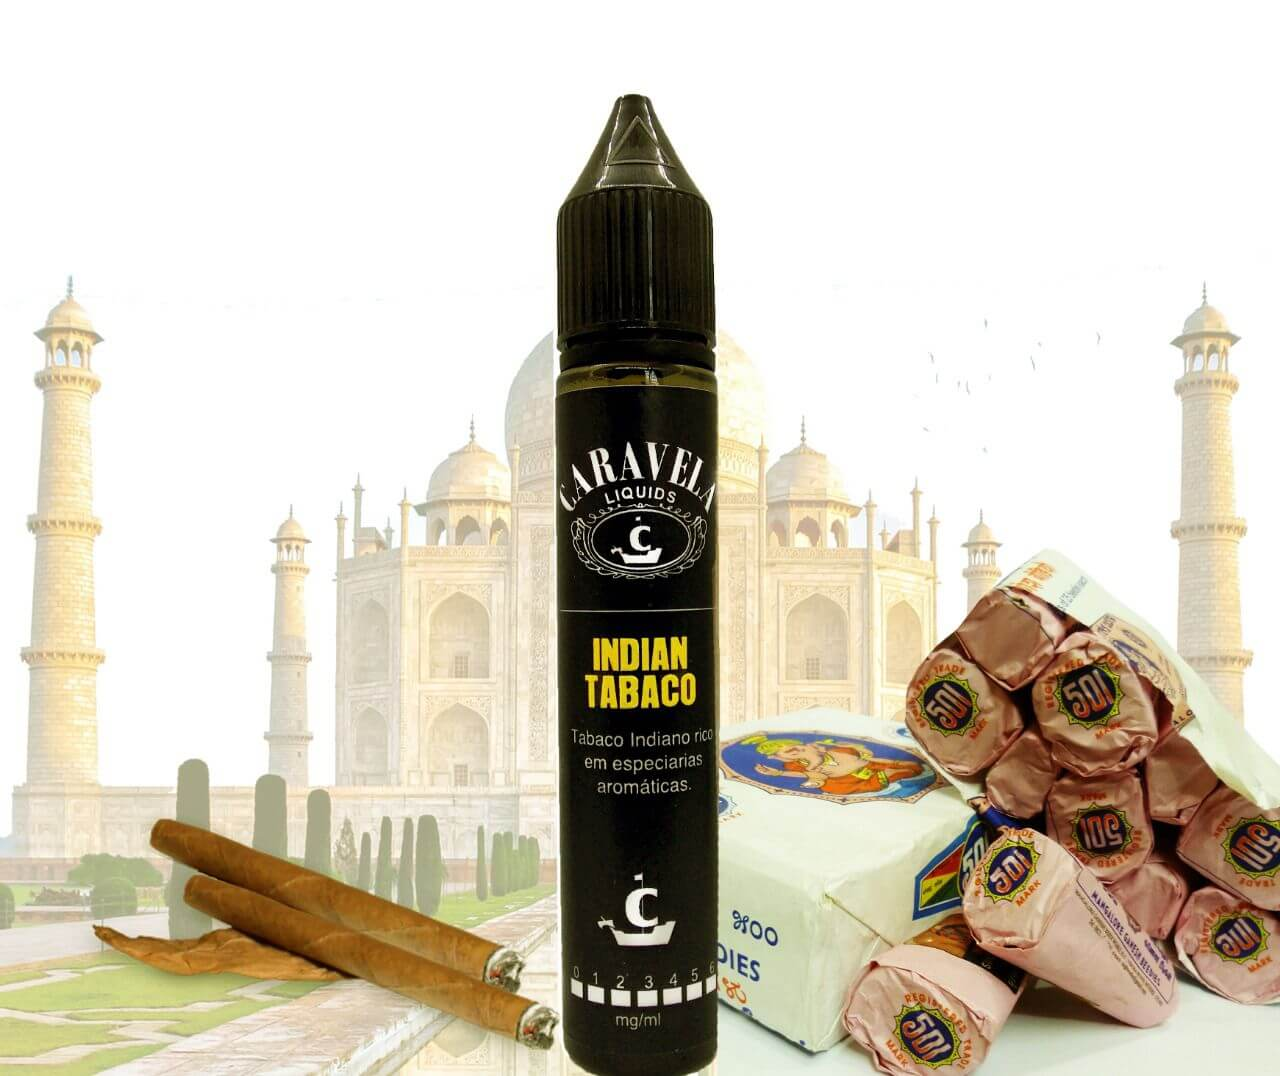 Indian Tabaco by Caravela Liquids